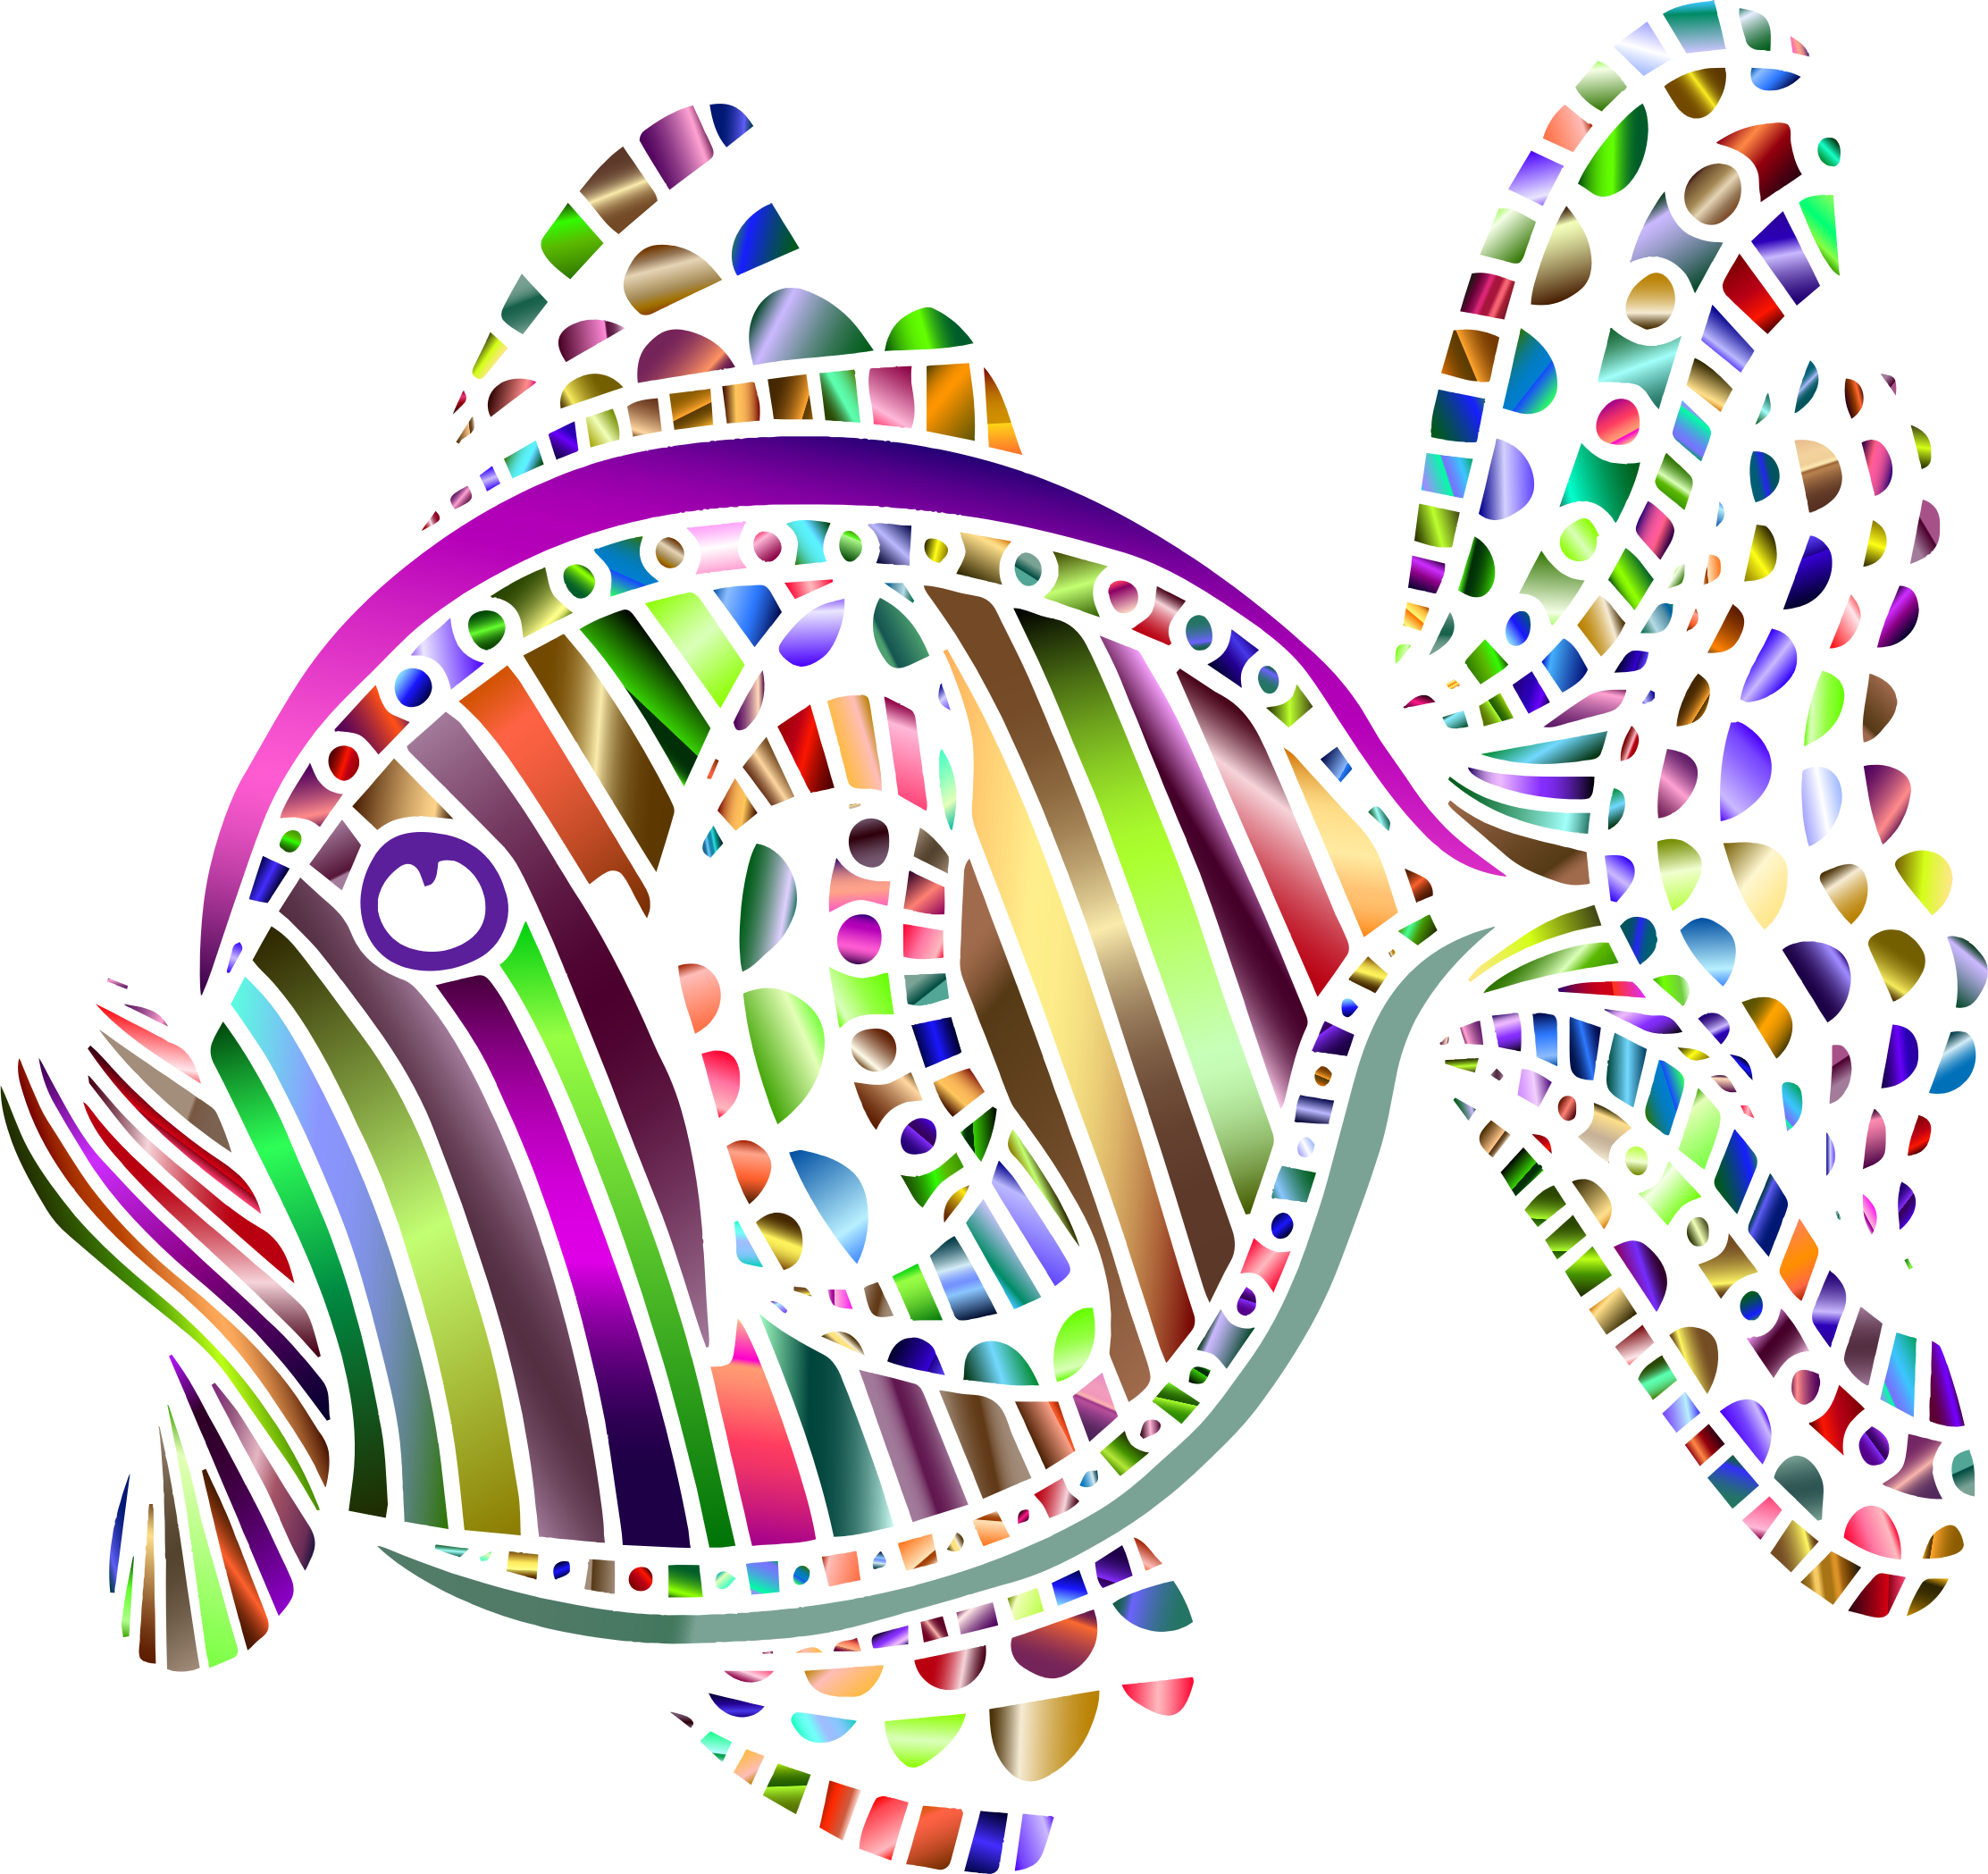 Fish thin clipart freeuse library Abstract Colorful Fish 3 Icons PNG - Free PNG and Icons Downloads freeuse library